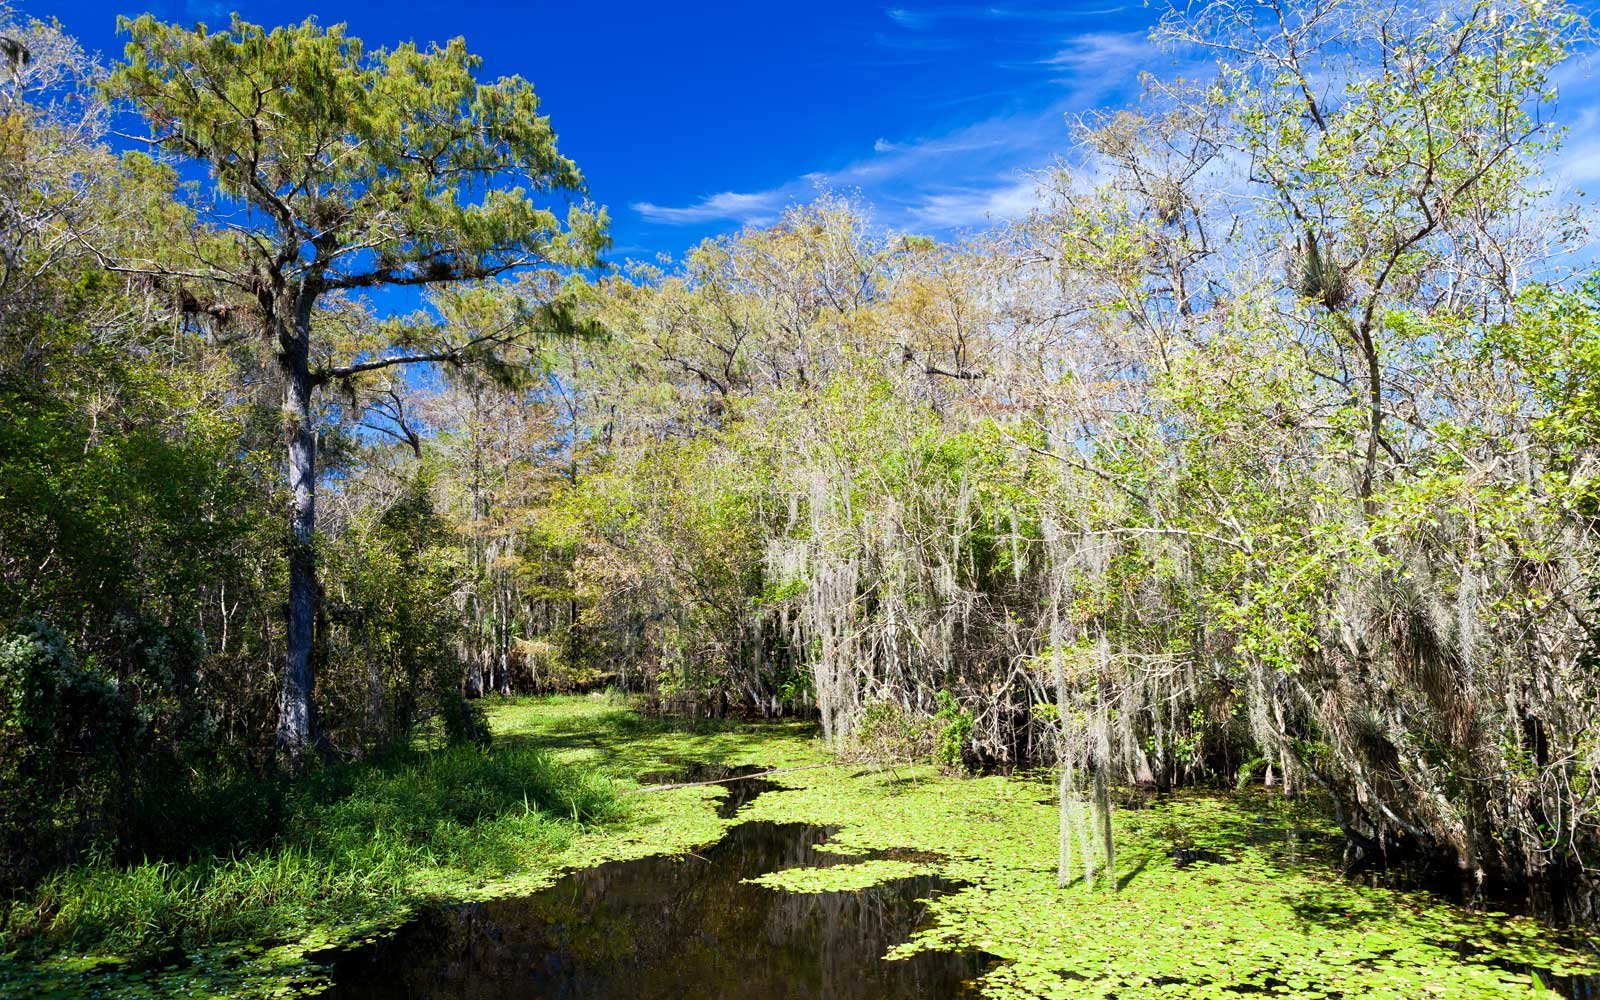 A Guide to National Parks in Florida